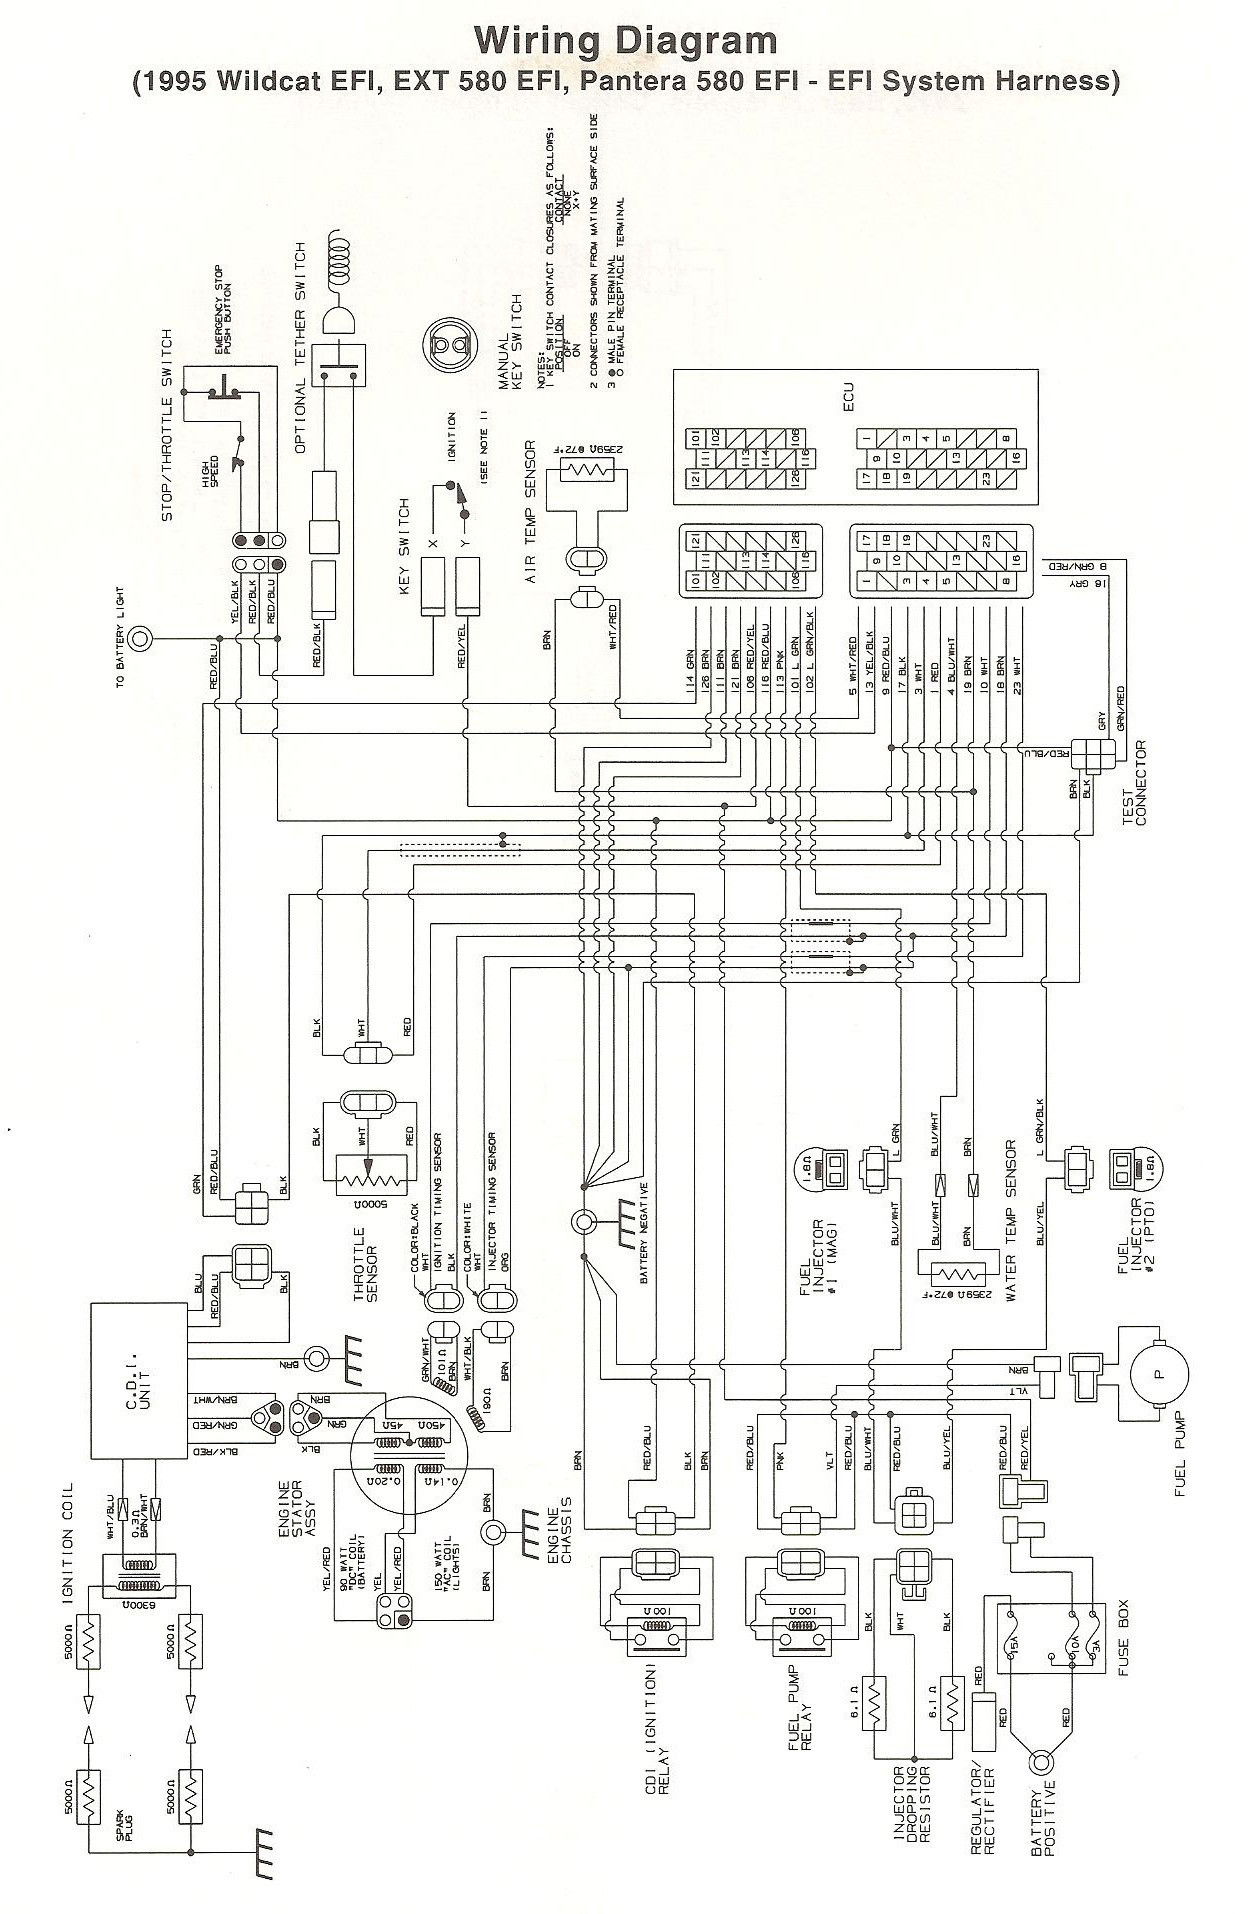 diagram] 2007 yamaha rhino wiring diagram full version hd quality wiring  diagram - ebooktopsellers.abeteecologico.it  ebooktopsellers.abeteecologico.it